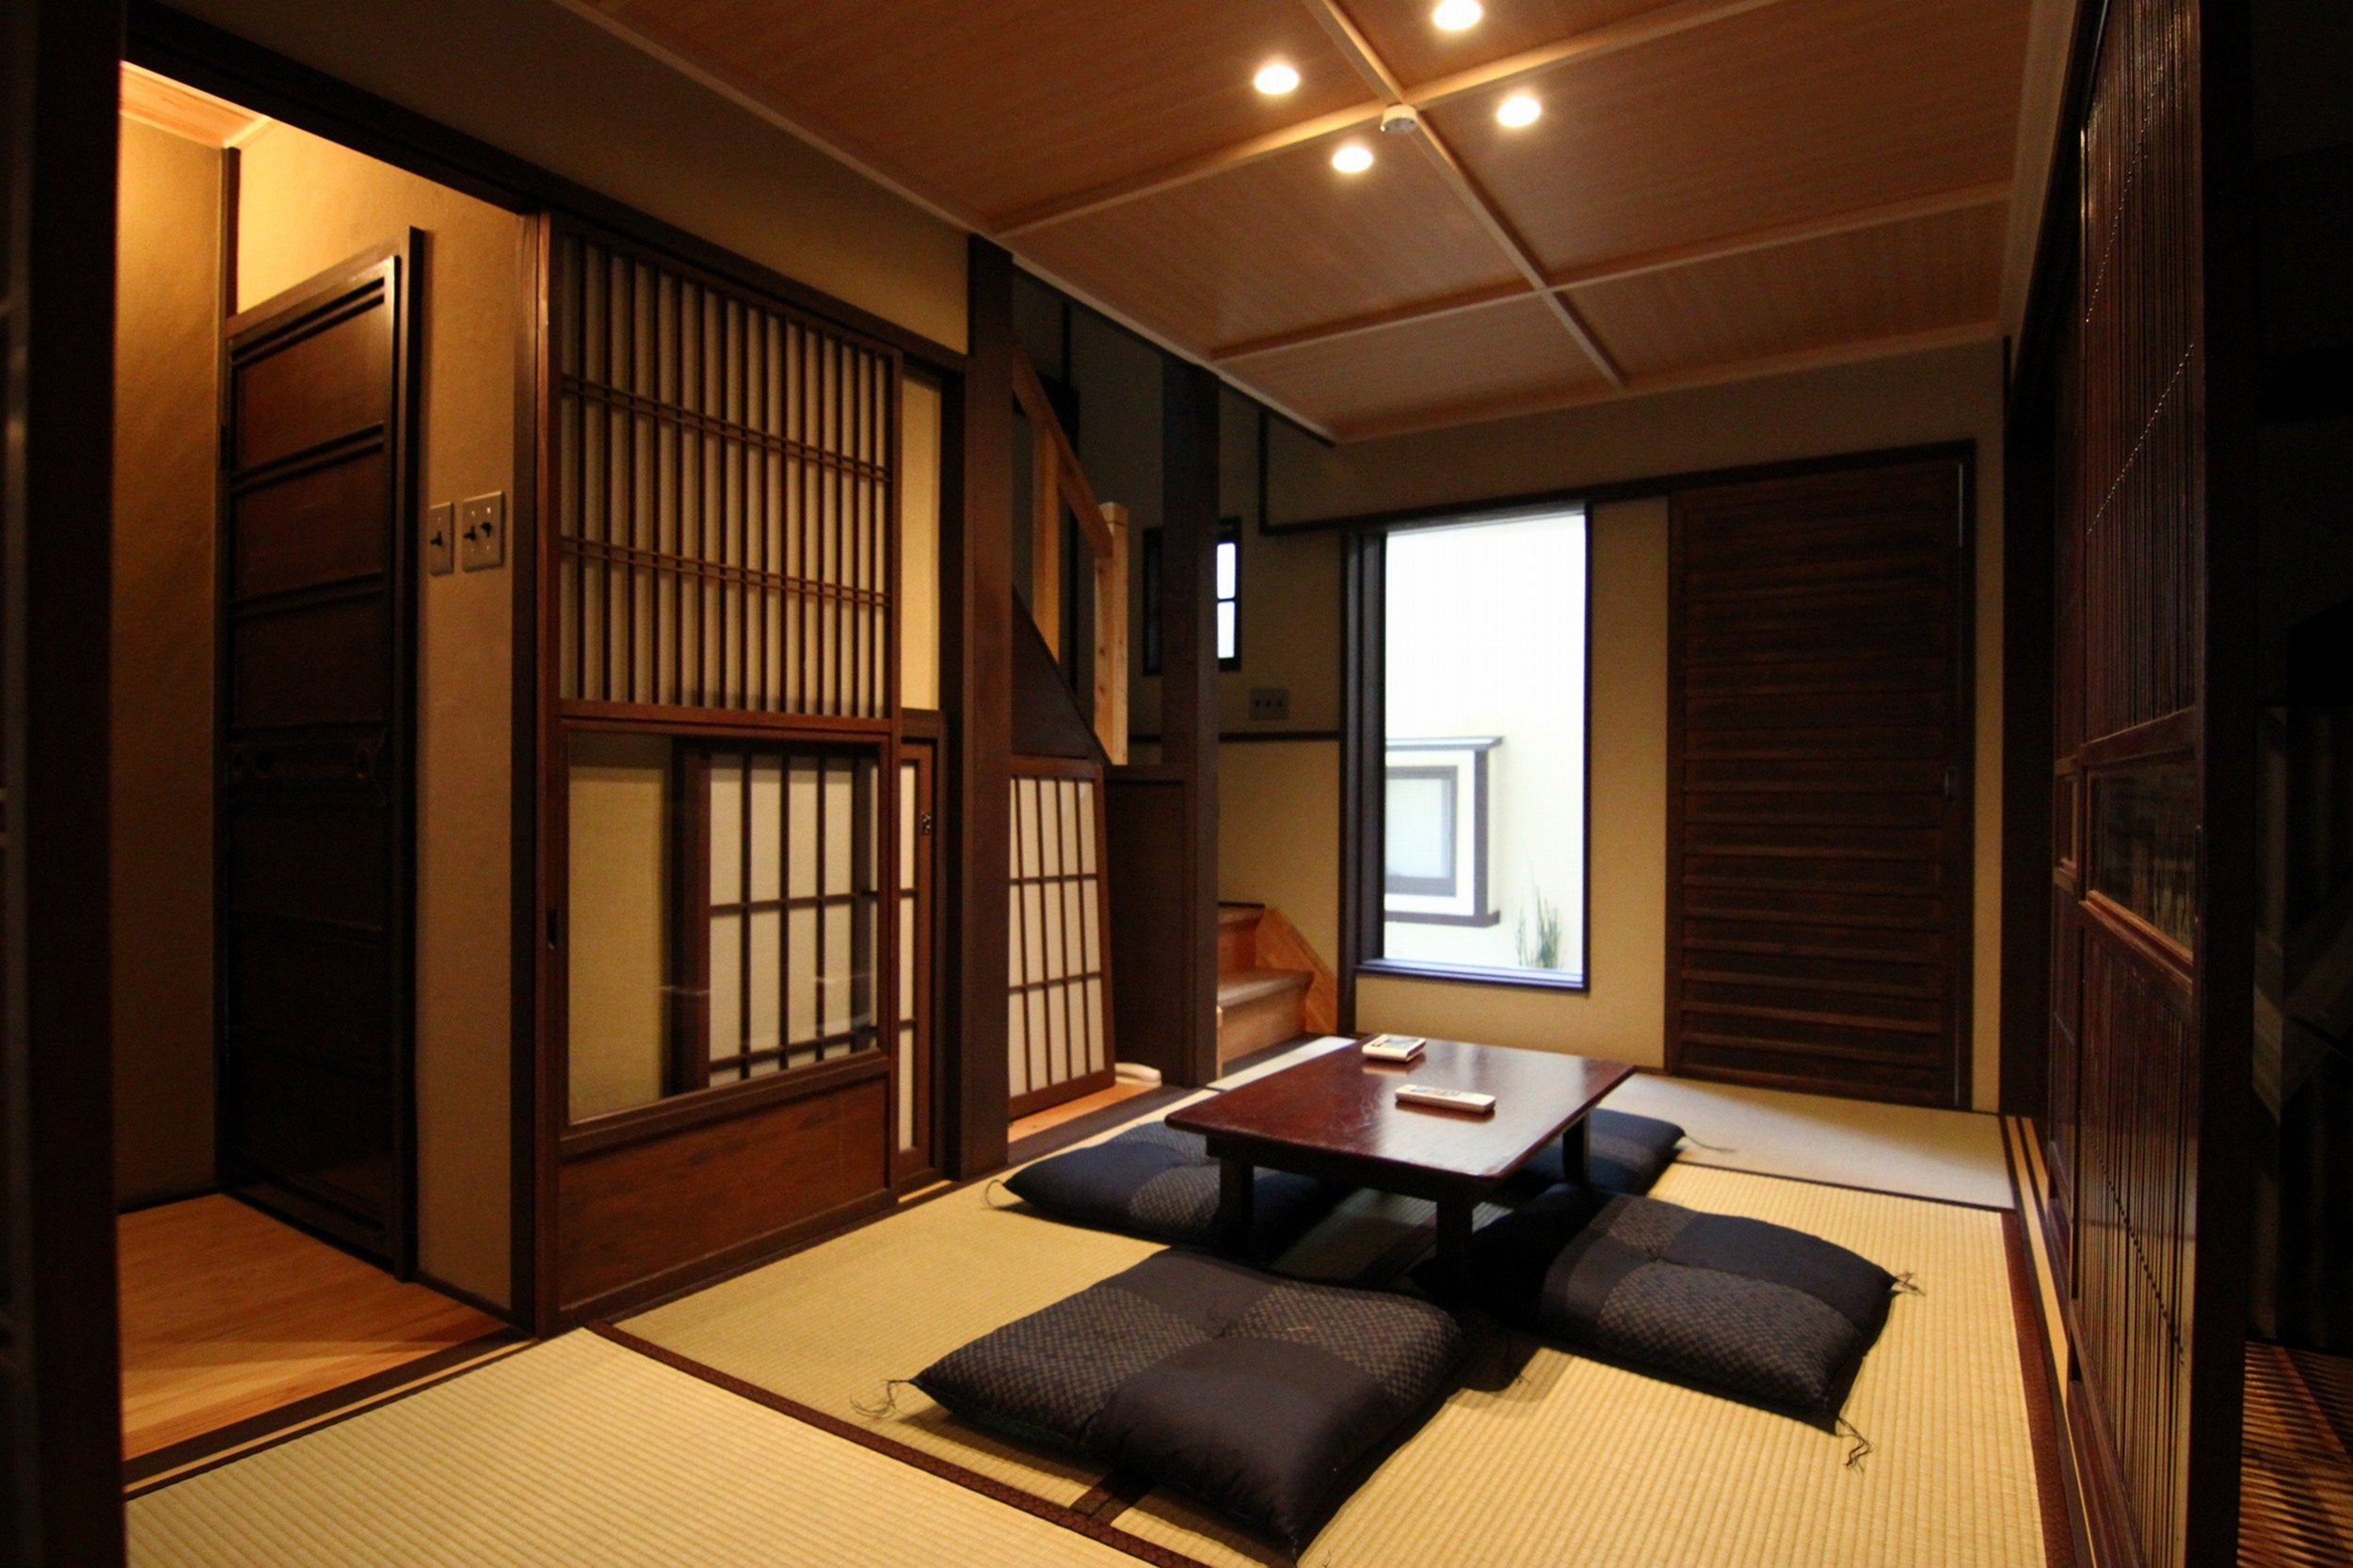 20 Home Interior Design With Traditional Japanese Style Japanese Living Rooms Japanese Living Room Japanese Living Room Decor Living room japan style